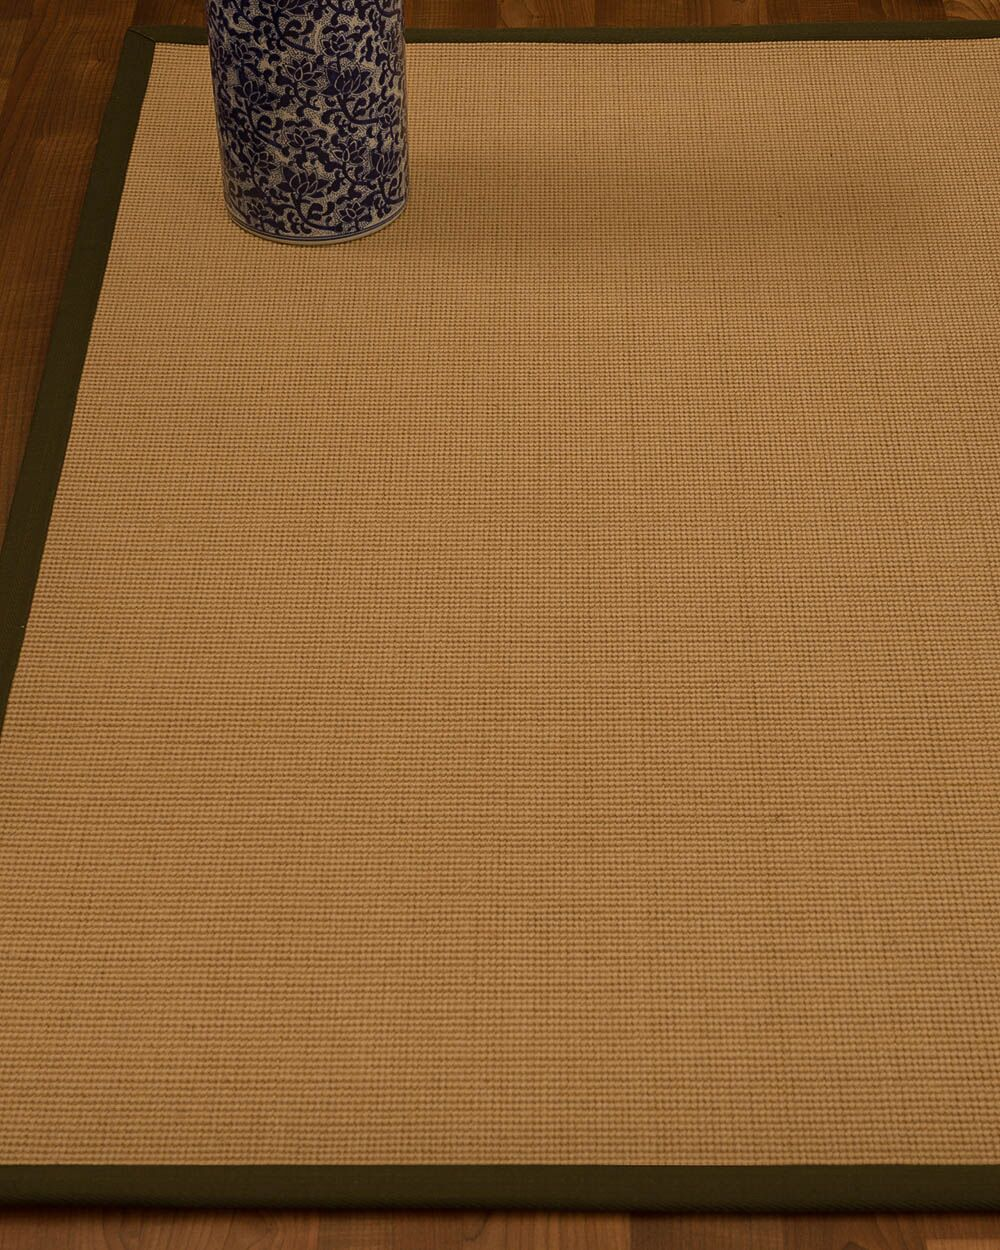 Magruder Border Hand-Woven Wool Beige/Malt Area Rug Rug Size: Rectangle 5' x 8', Rug Pad Included: Yes